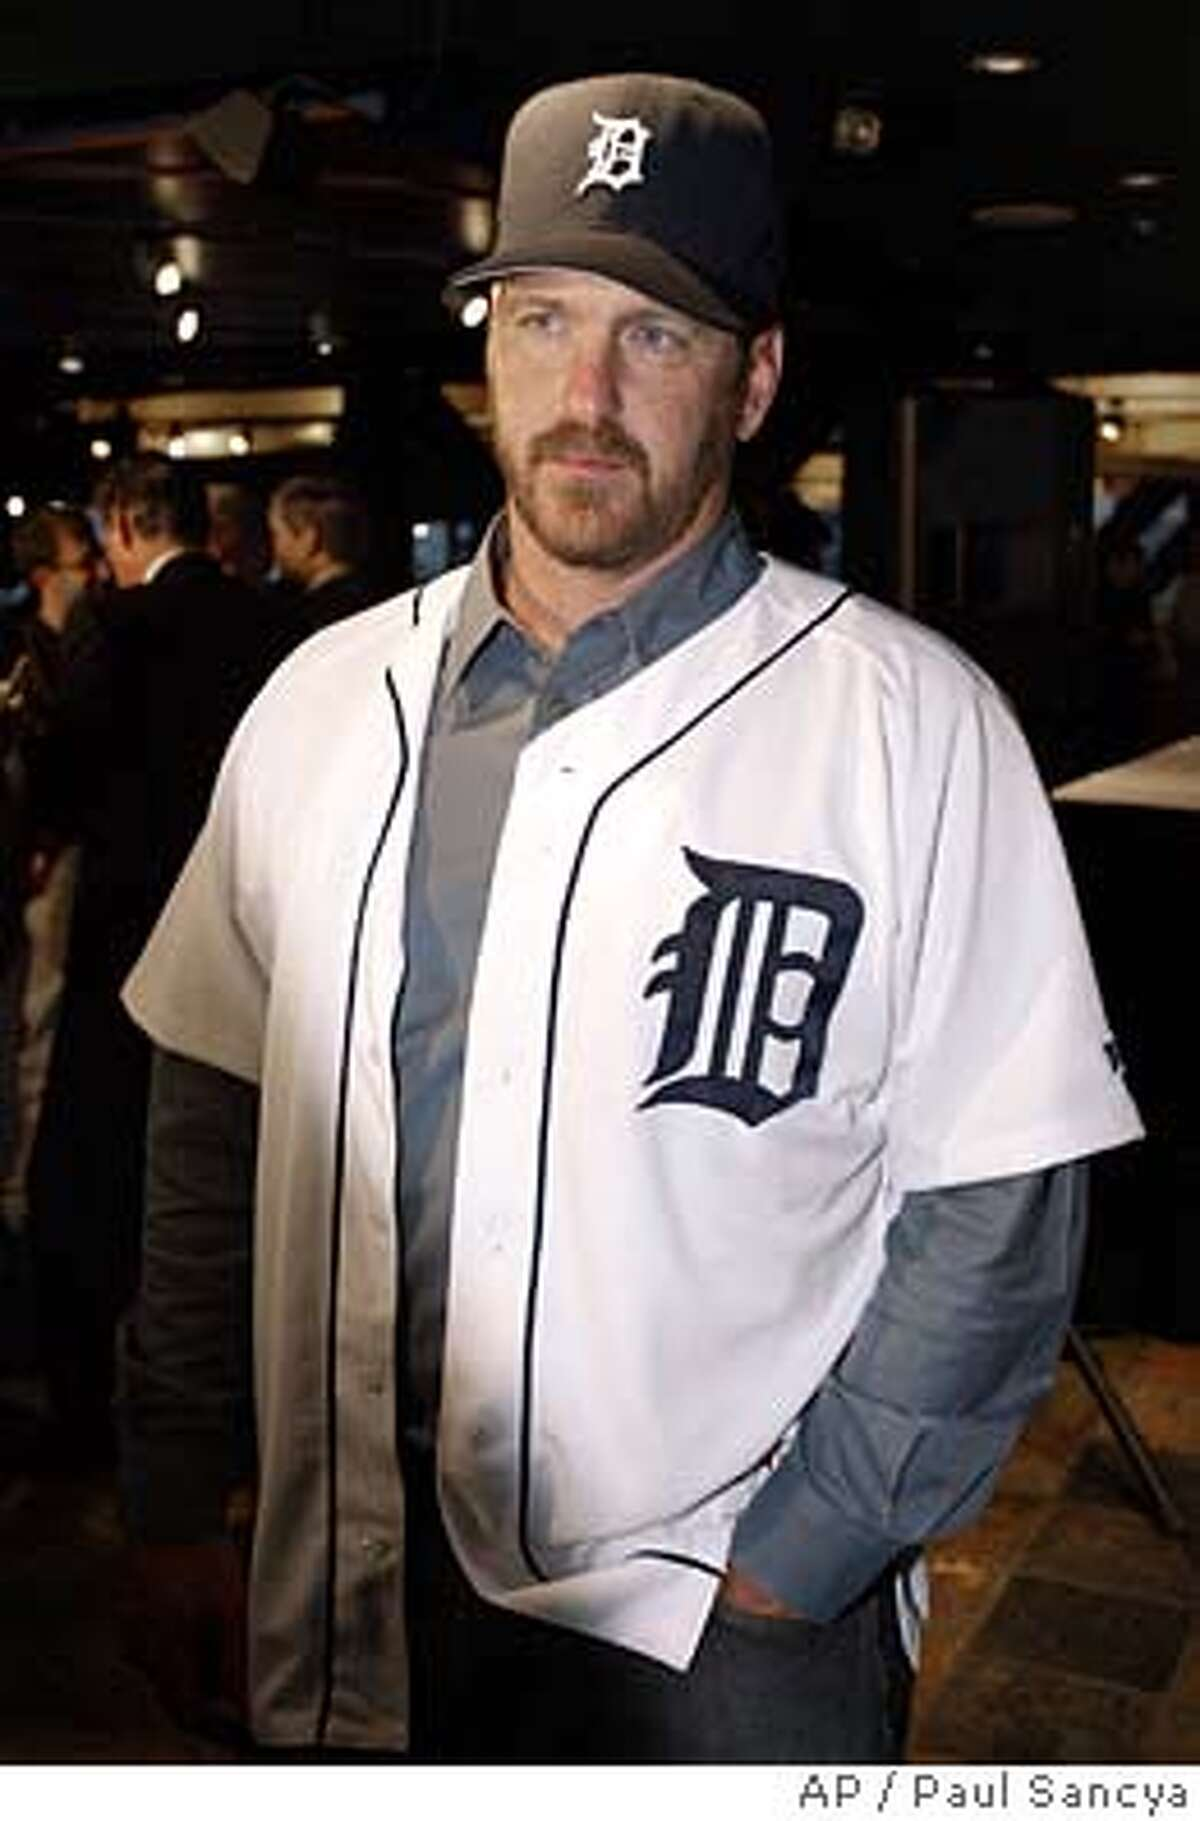 Detroit Tigers relief pitcher Troy Percival speaks to the media after a news conference in Detroit, Wednesday, Nov. 17, 2004. Percival and the Tigers agreed on a $12 million, two-year contract. (AP Photo/Paul Sancya) Ran on: 11-18-2004 Ran on: 11-18-2004